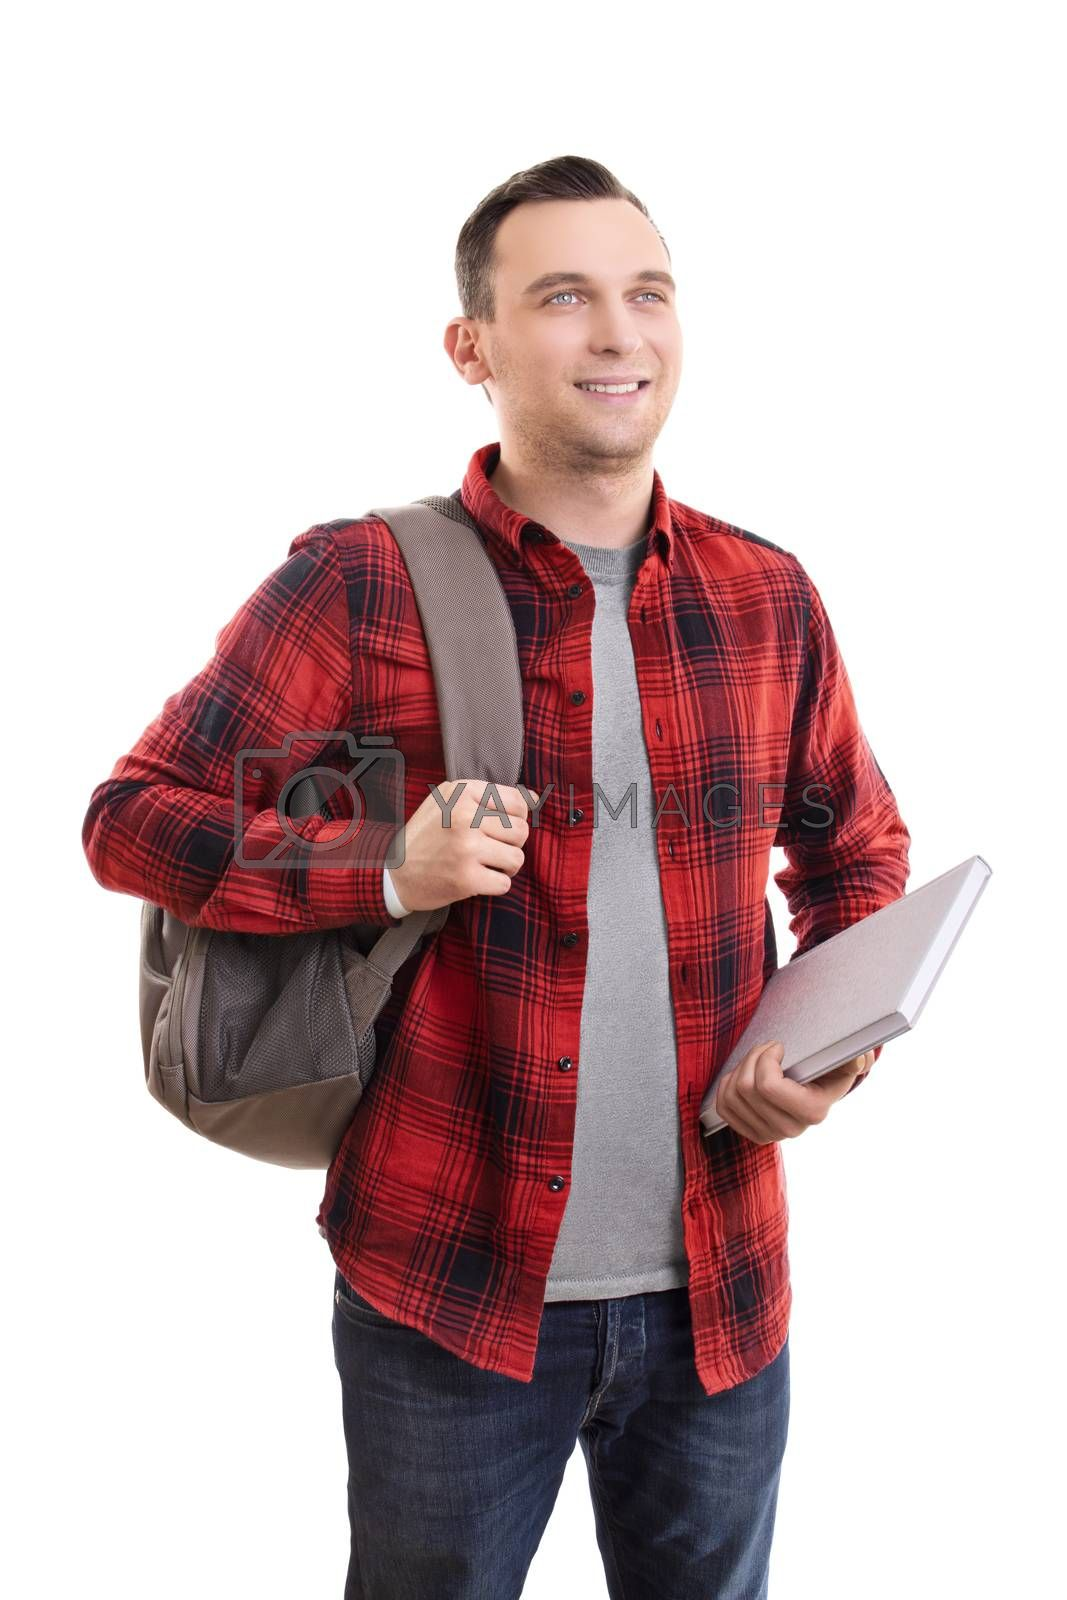 Portrait of a smiling male student in casual clothing, carrying backpack and notebook, isolated on white background.